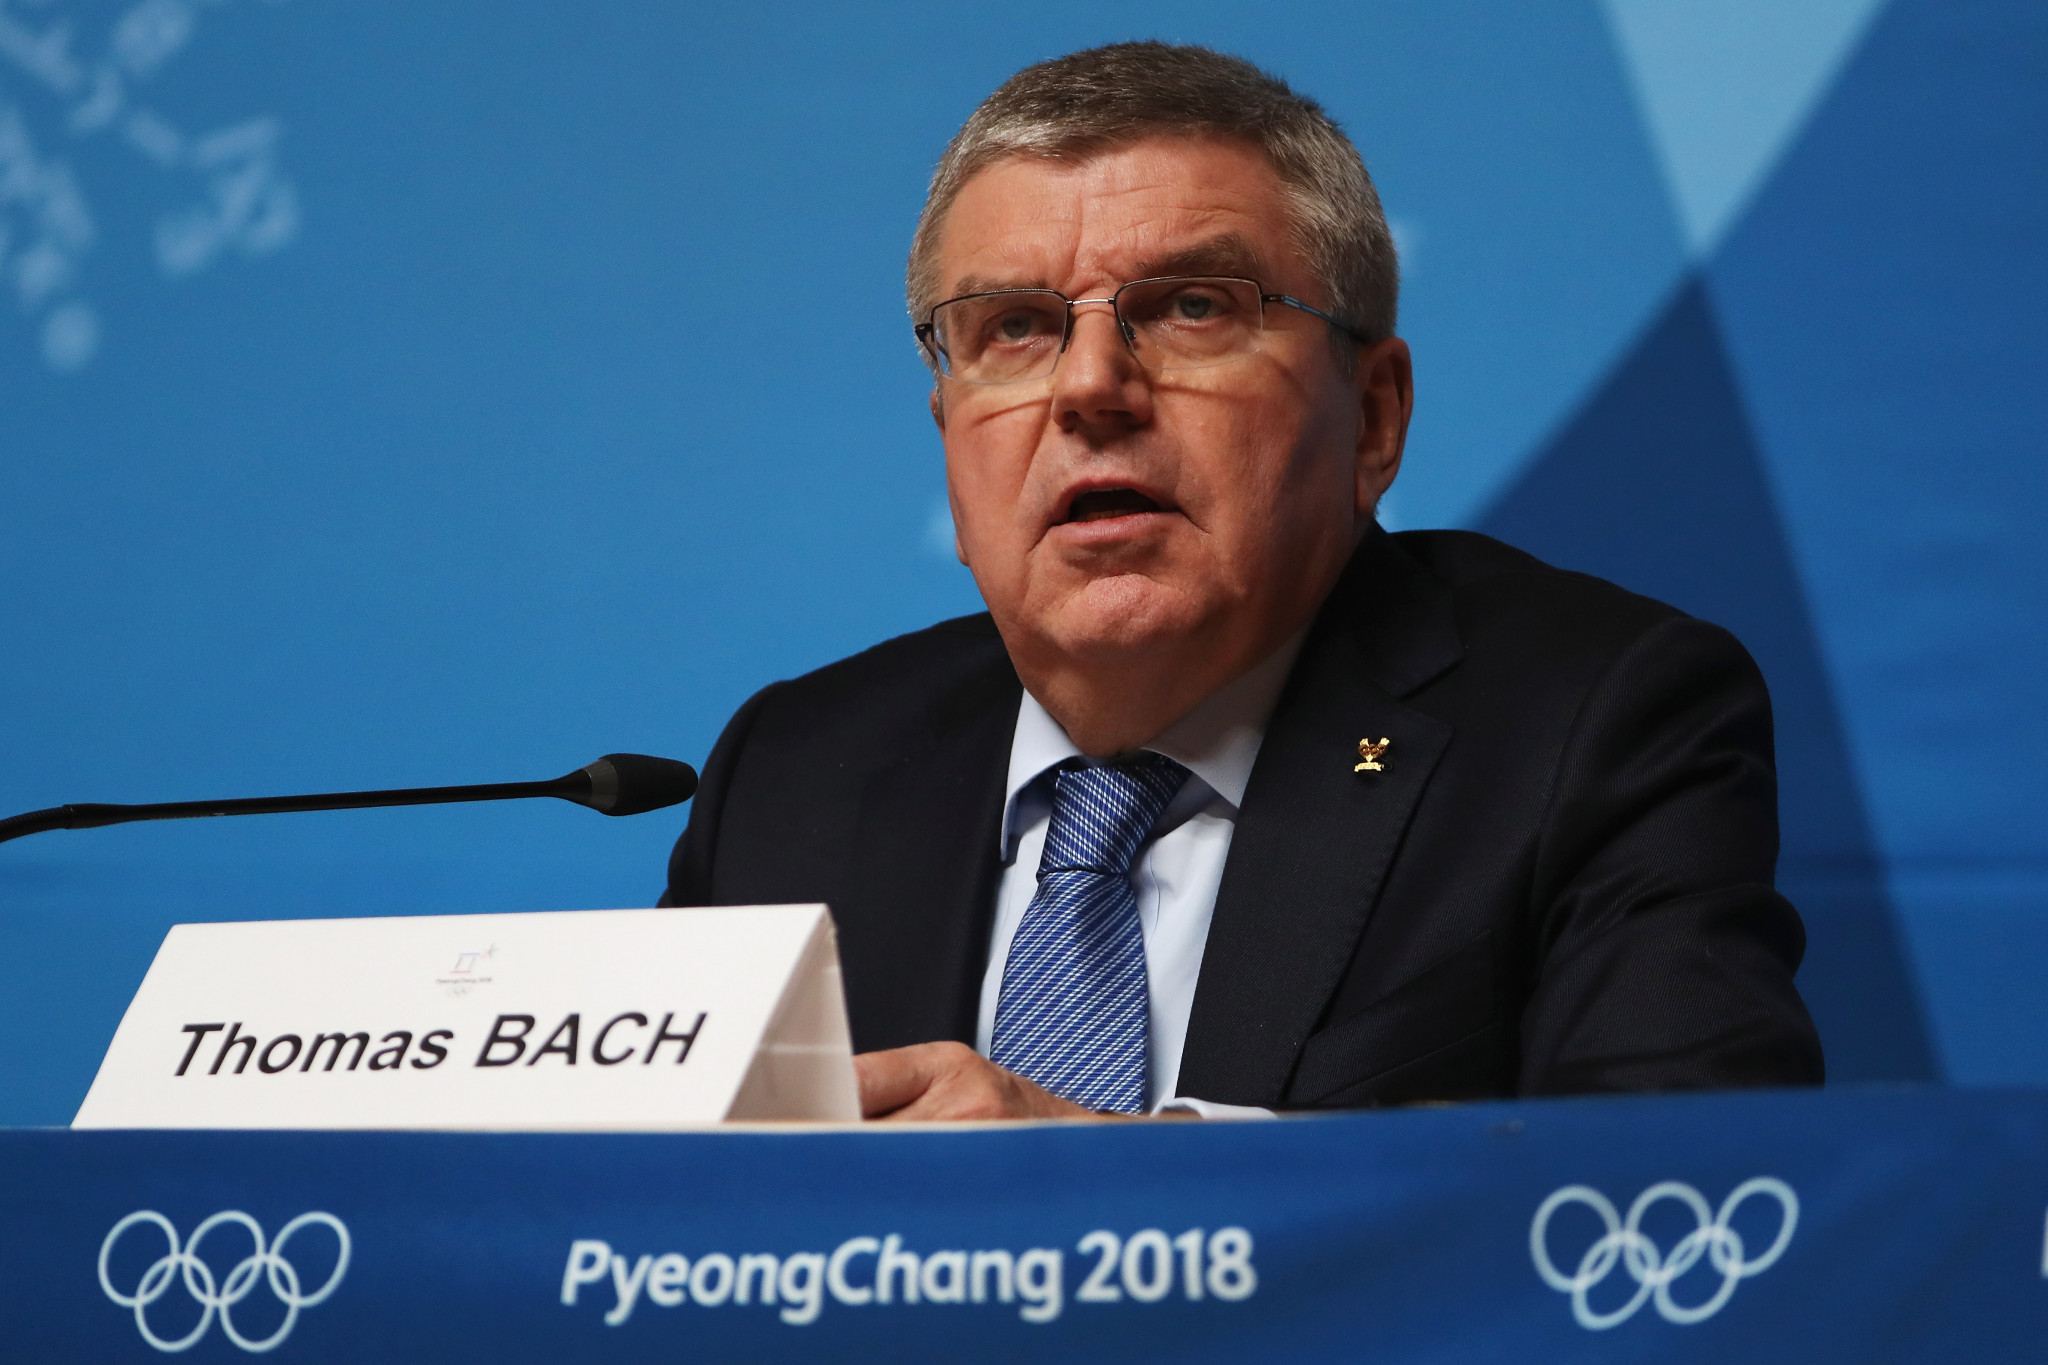 IOC President Thomas Bach admitted today Russia had not paid the $15 million fine imposed on them in December after they were found guilty of the